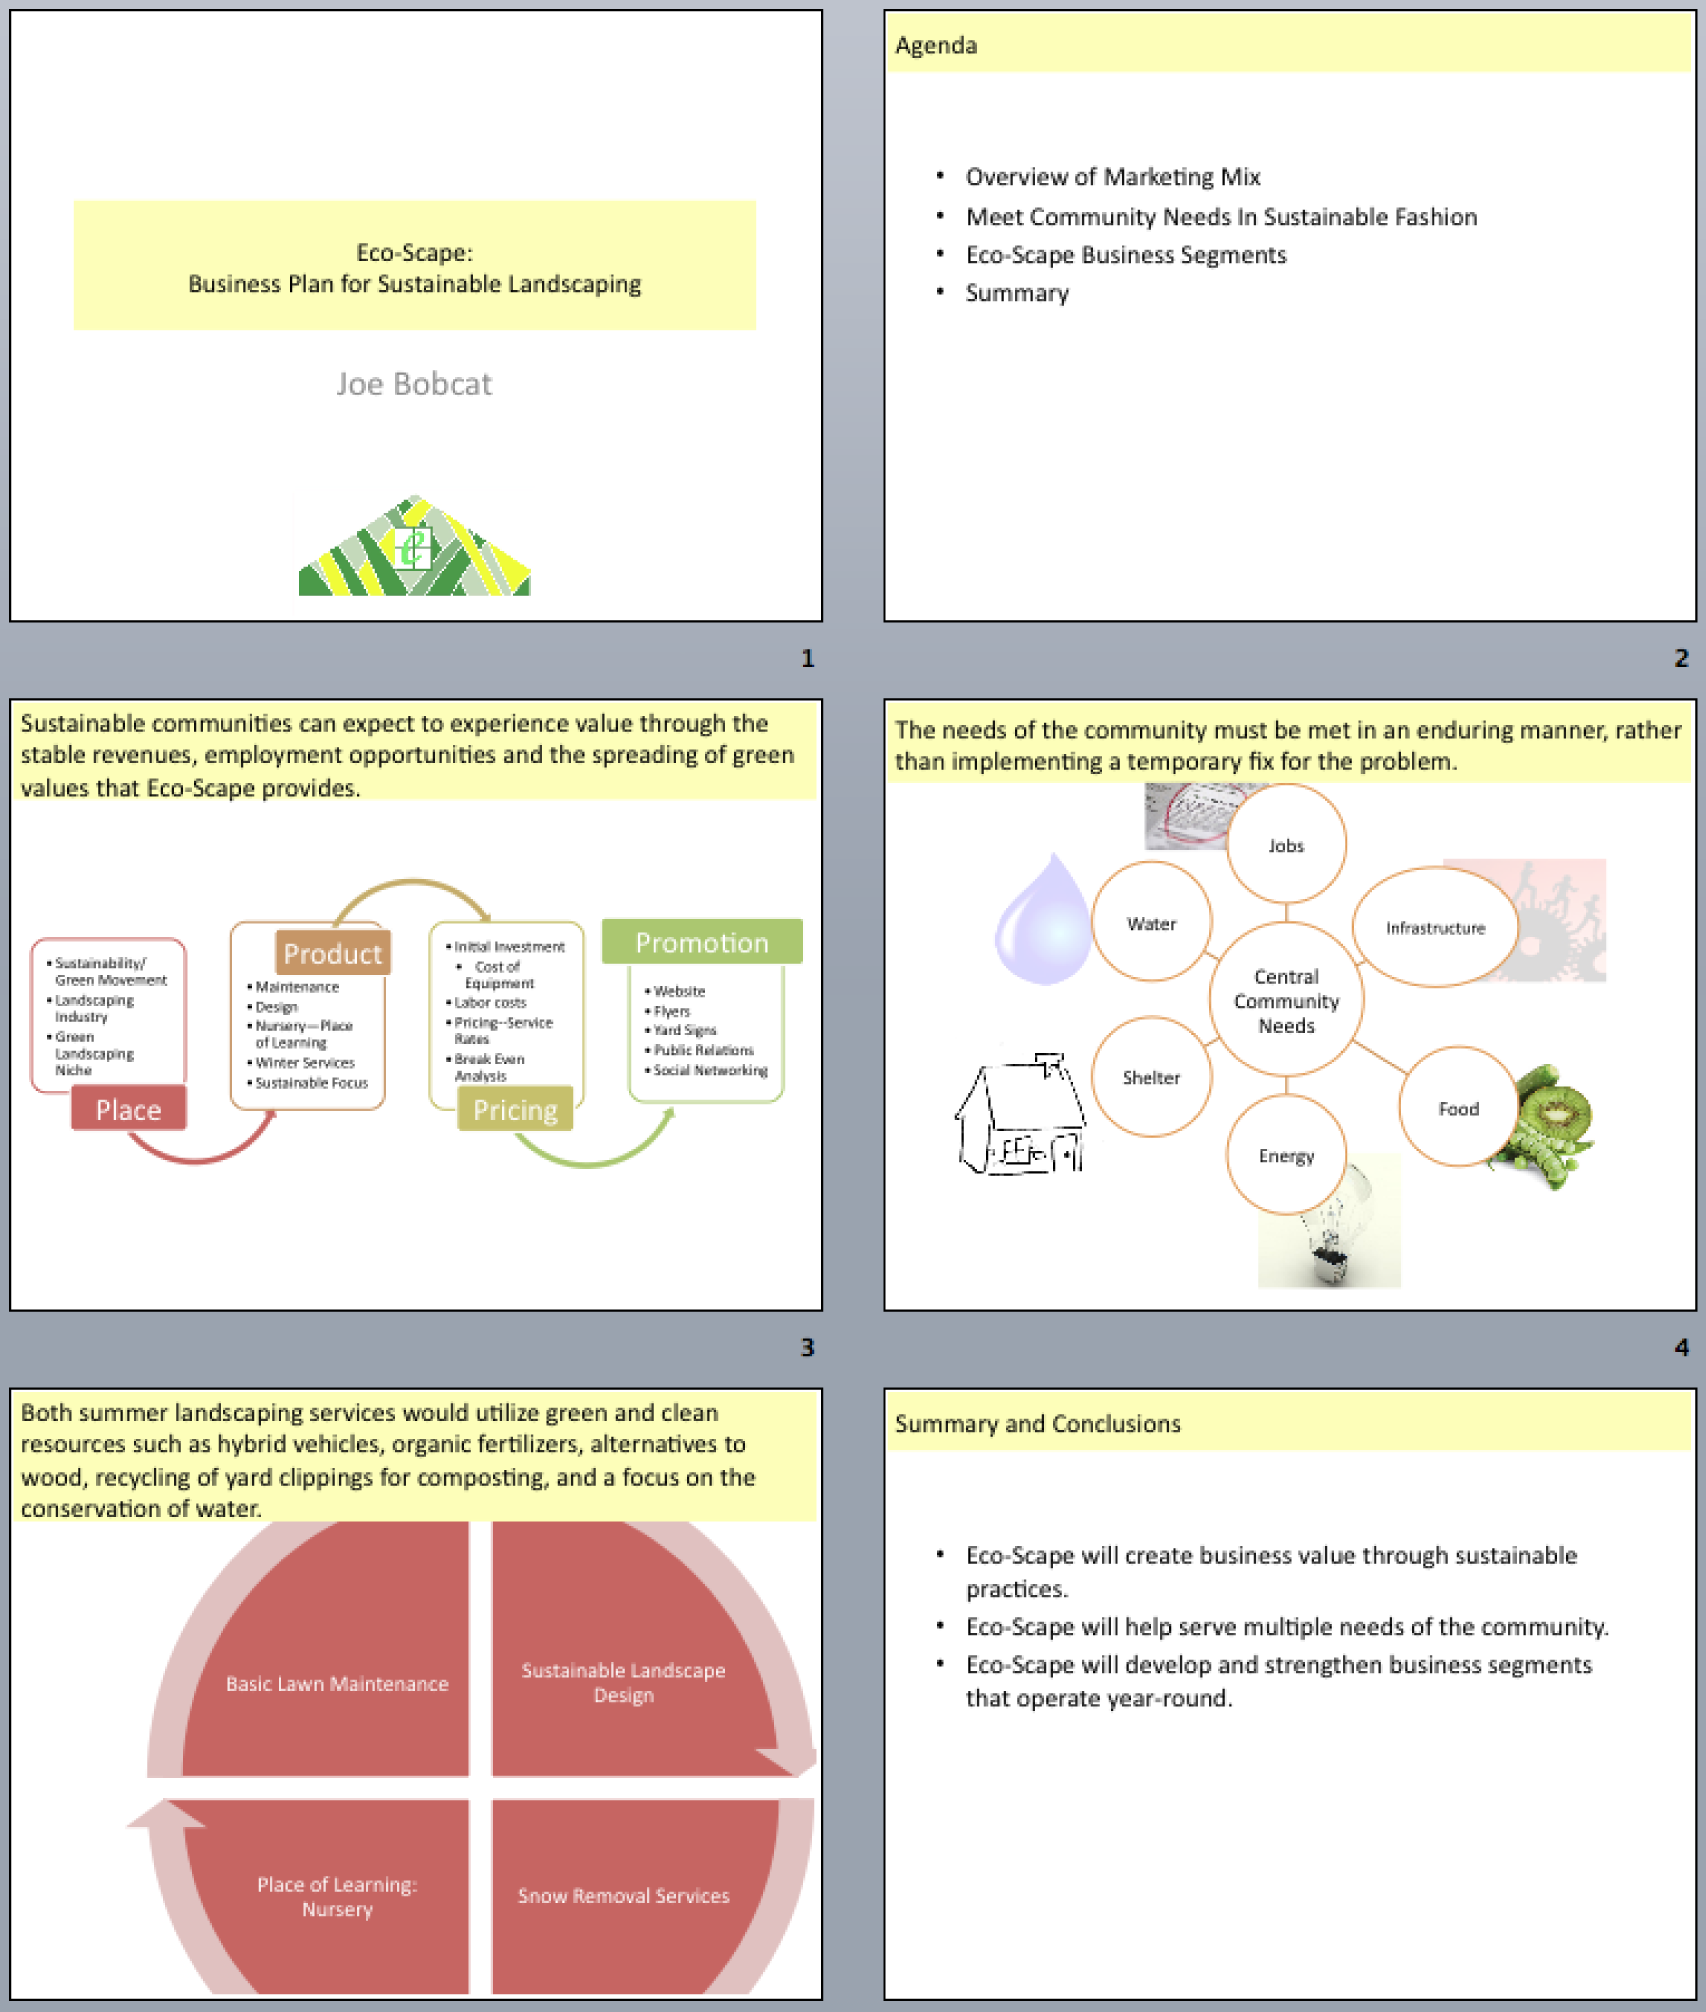 designing presentations, Presentation templates